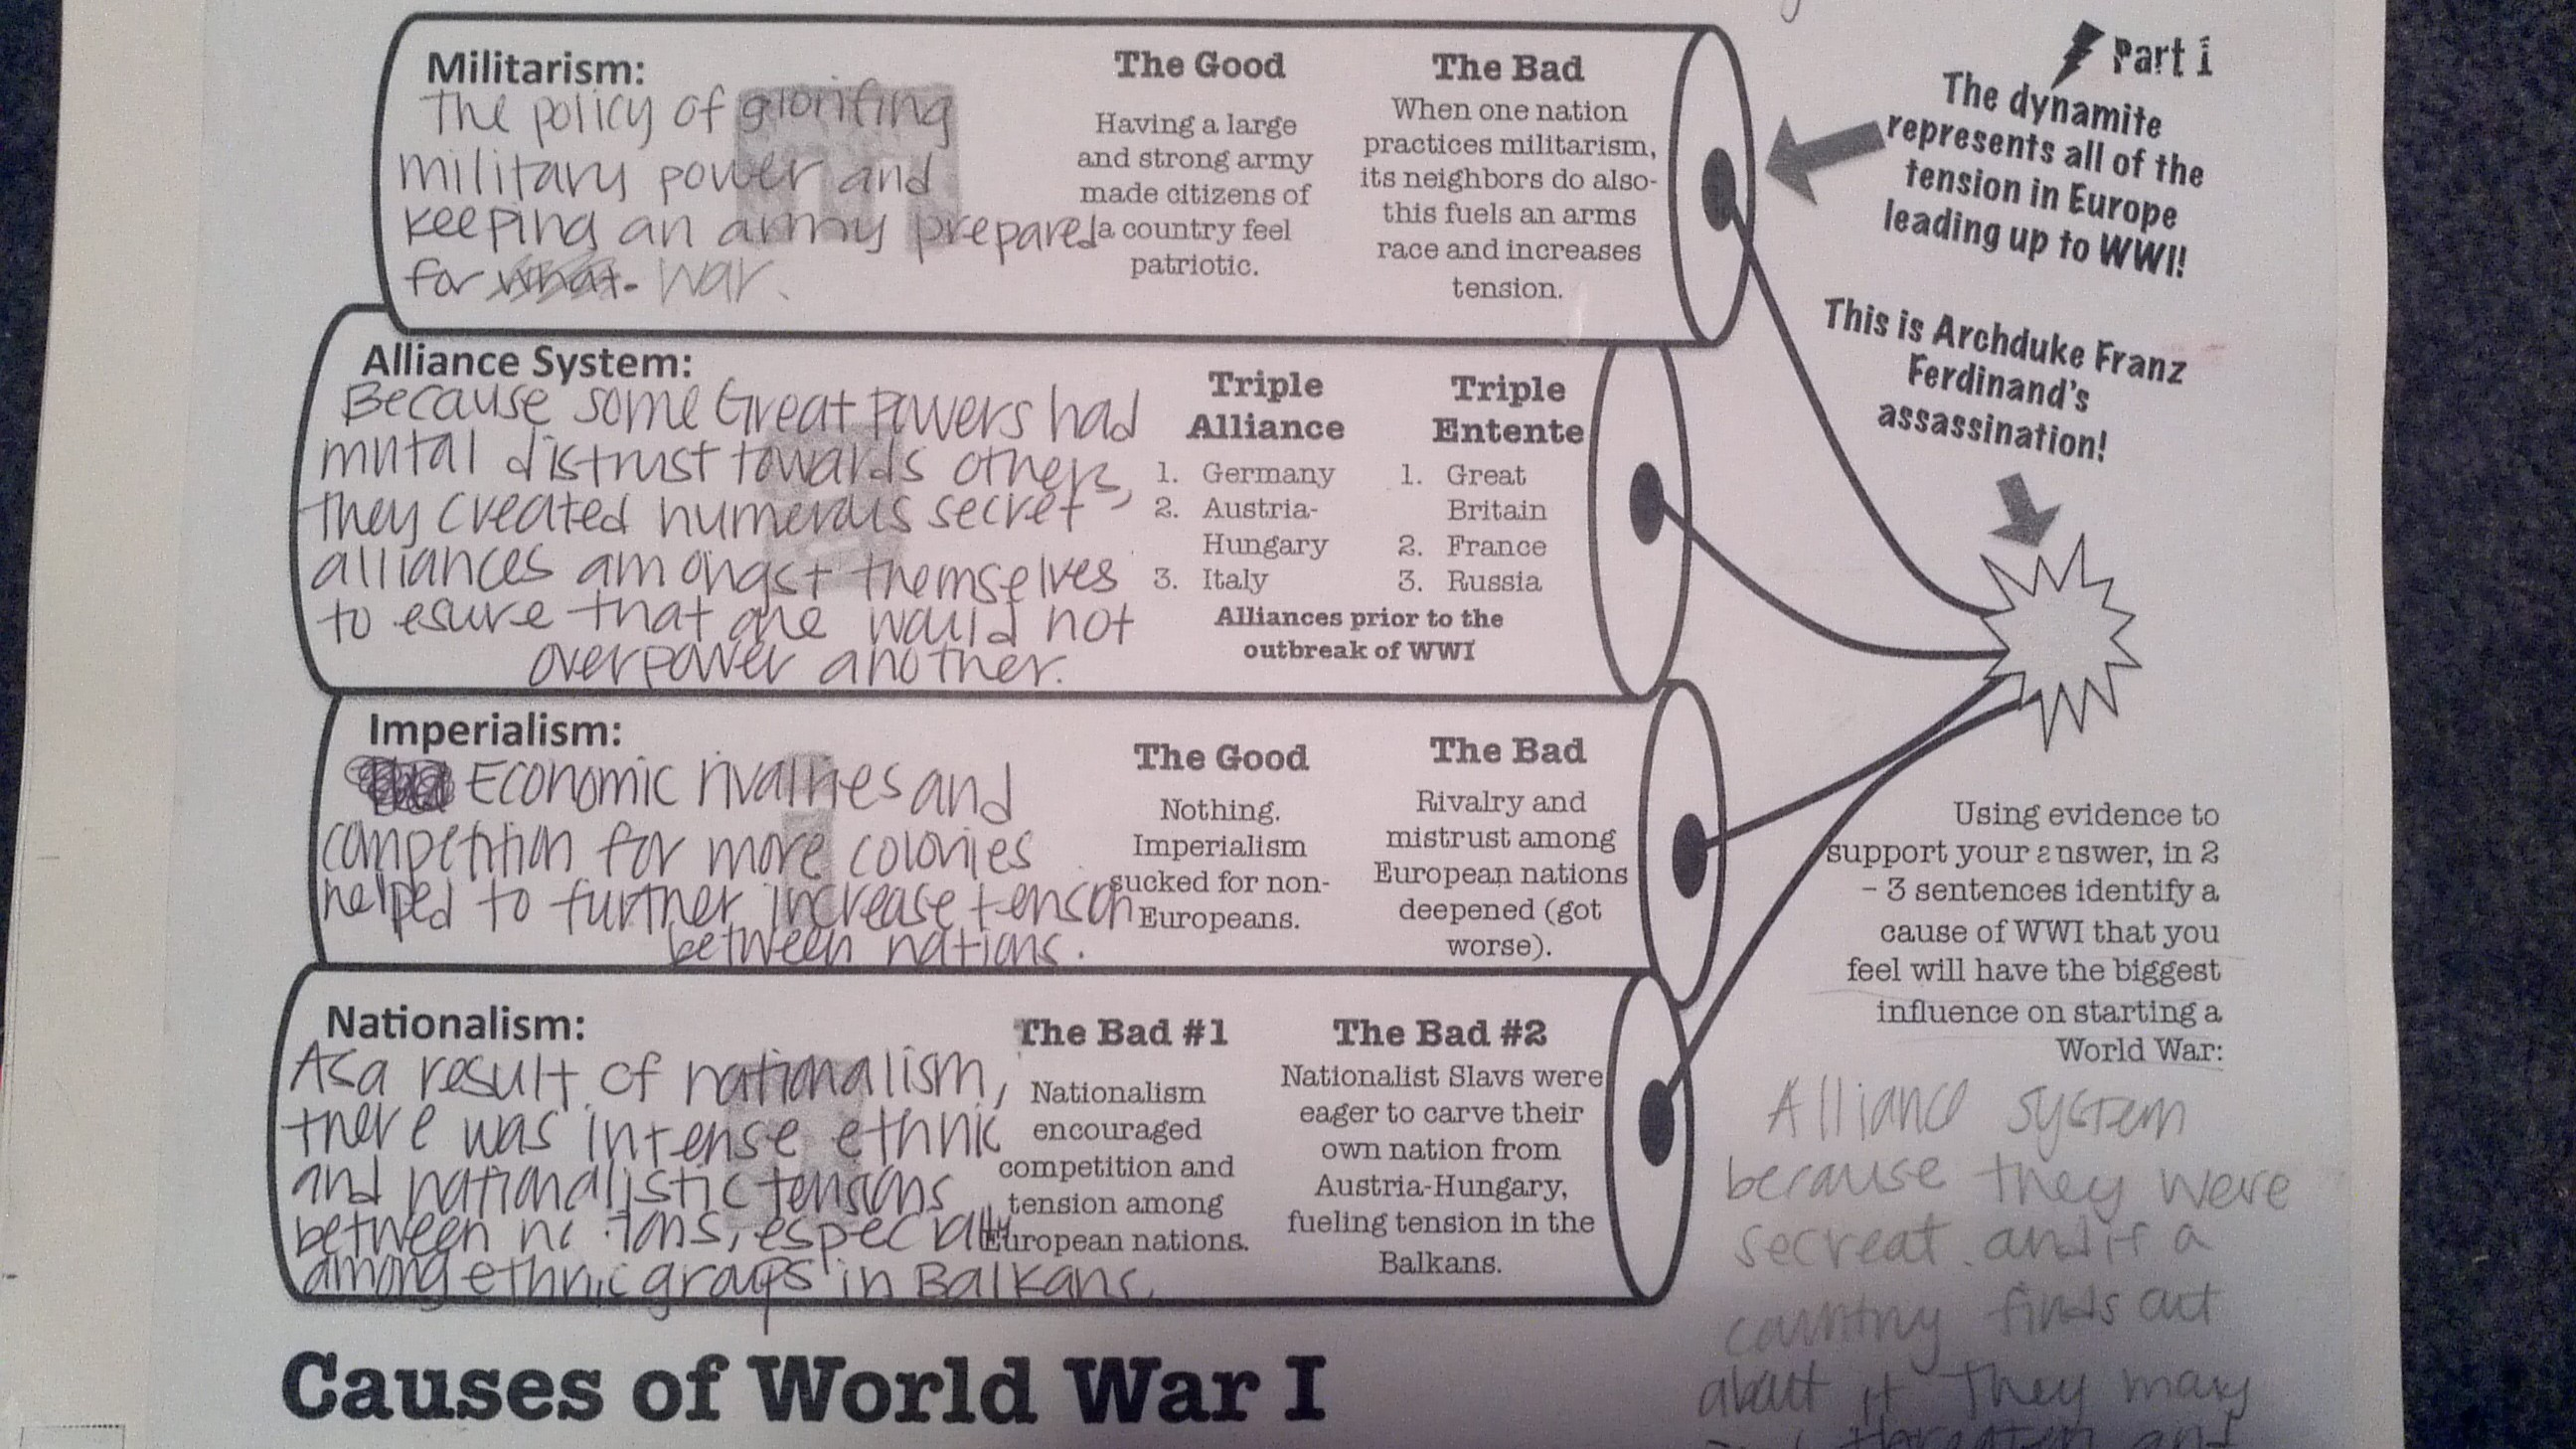 world war i causes and outcomes essay Read this essay on causes and outcomes of the revolution when czar nicholas ii dragged 11 million peasants into world war cause and outcome of war 1754.